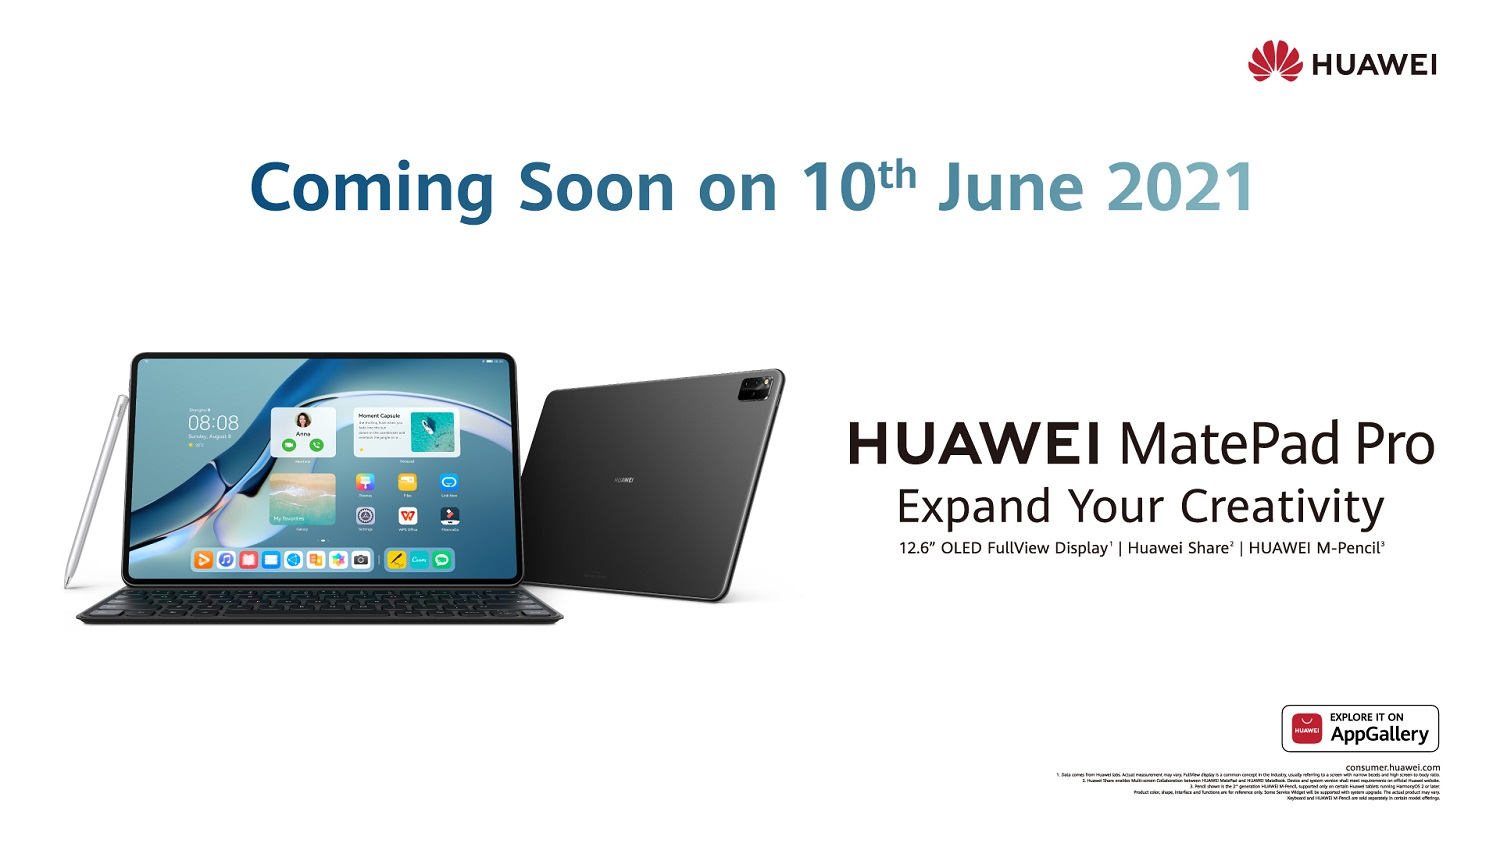 HUAWEI MatePad Pro to Launch on 10 June